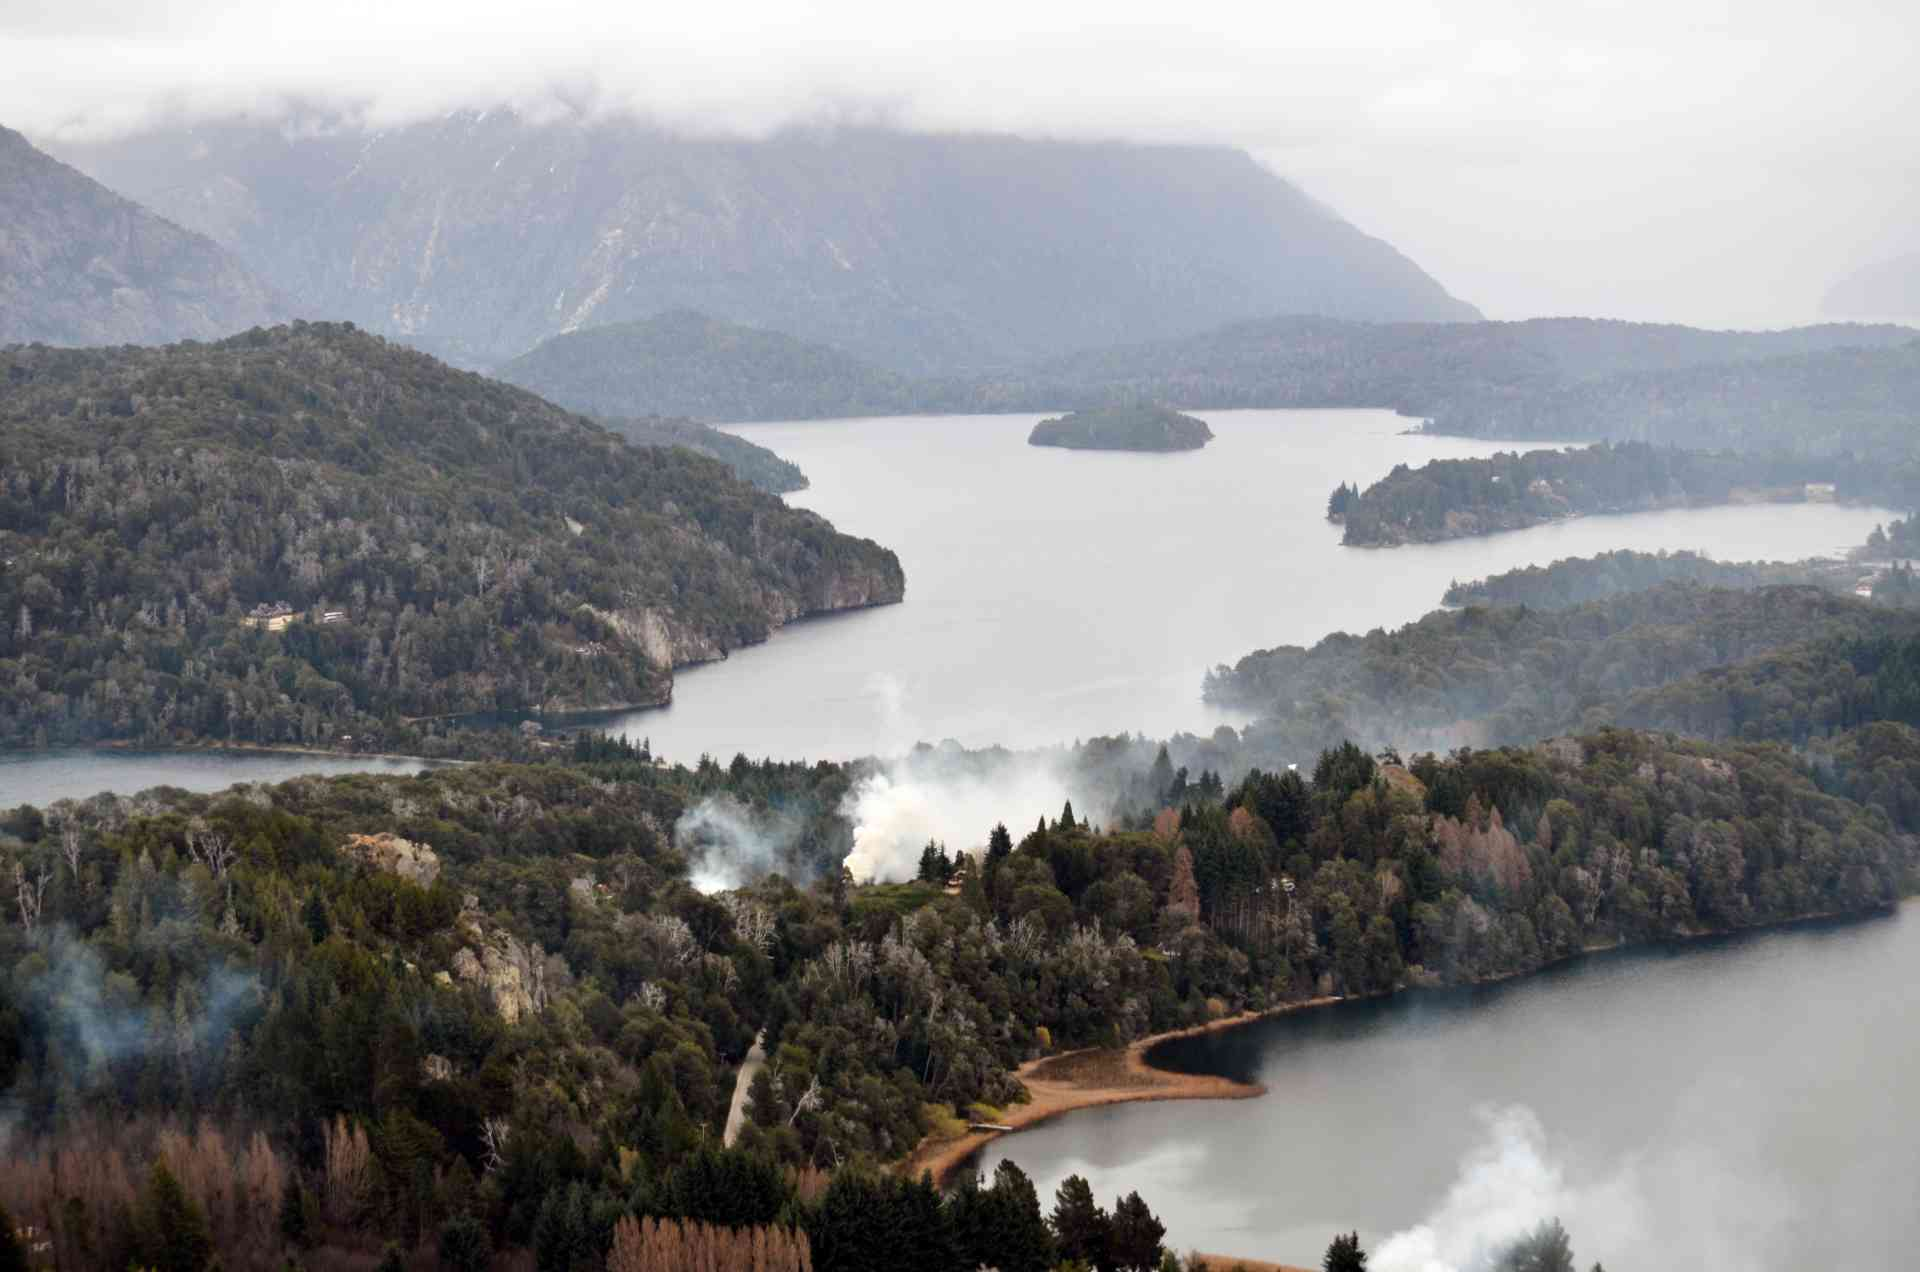 View of the Lakes, Argentina by Annelieke Huijgens